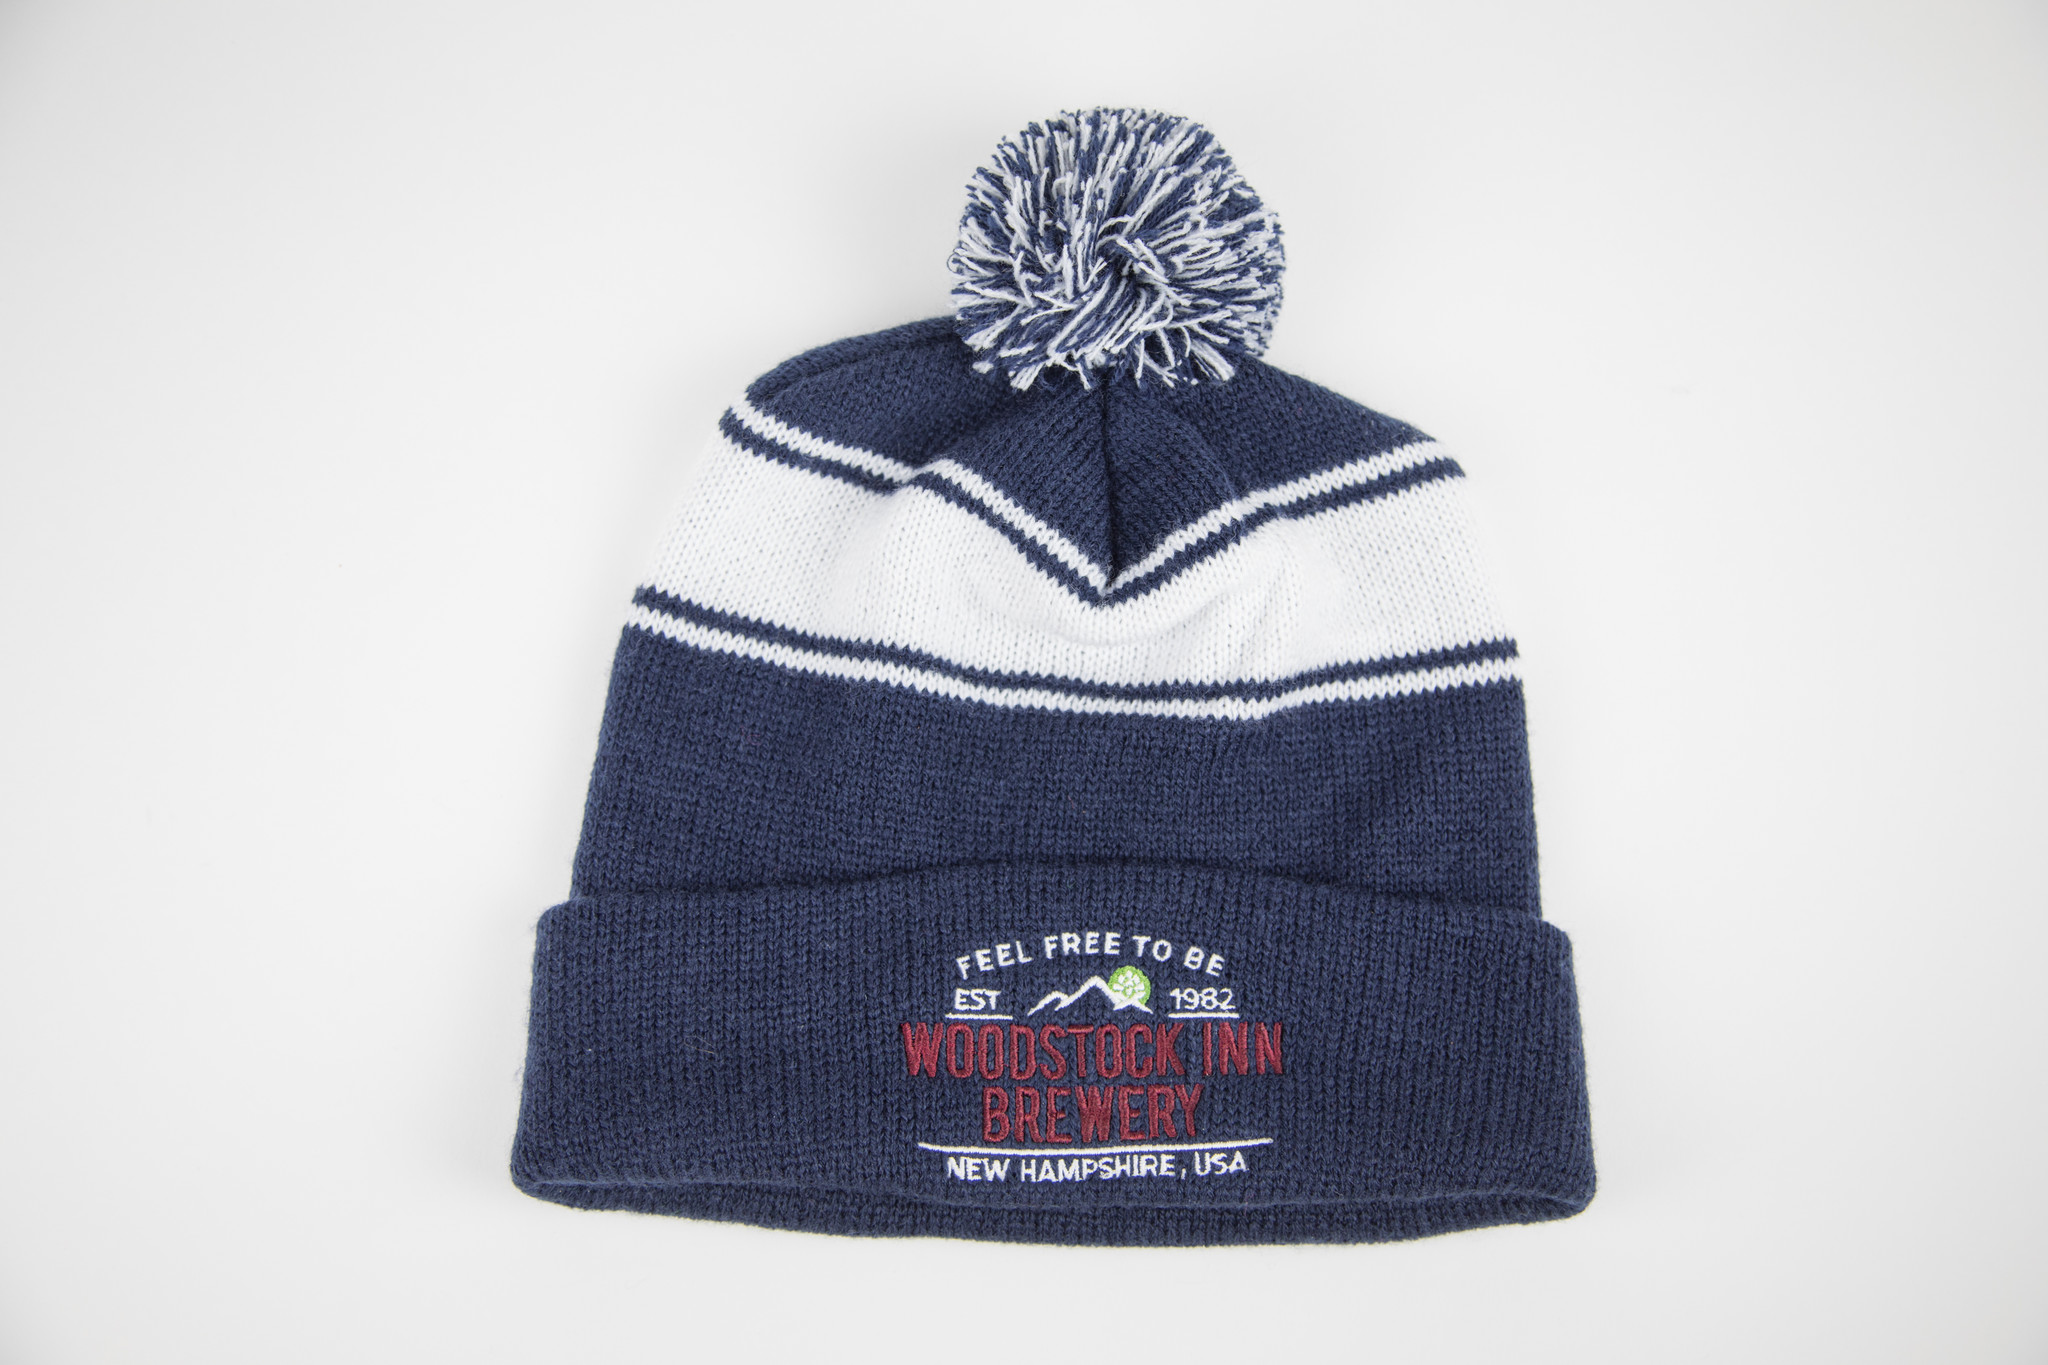 knit pom pom hat blue